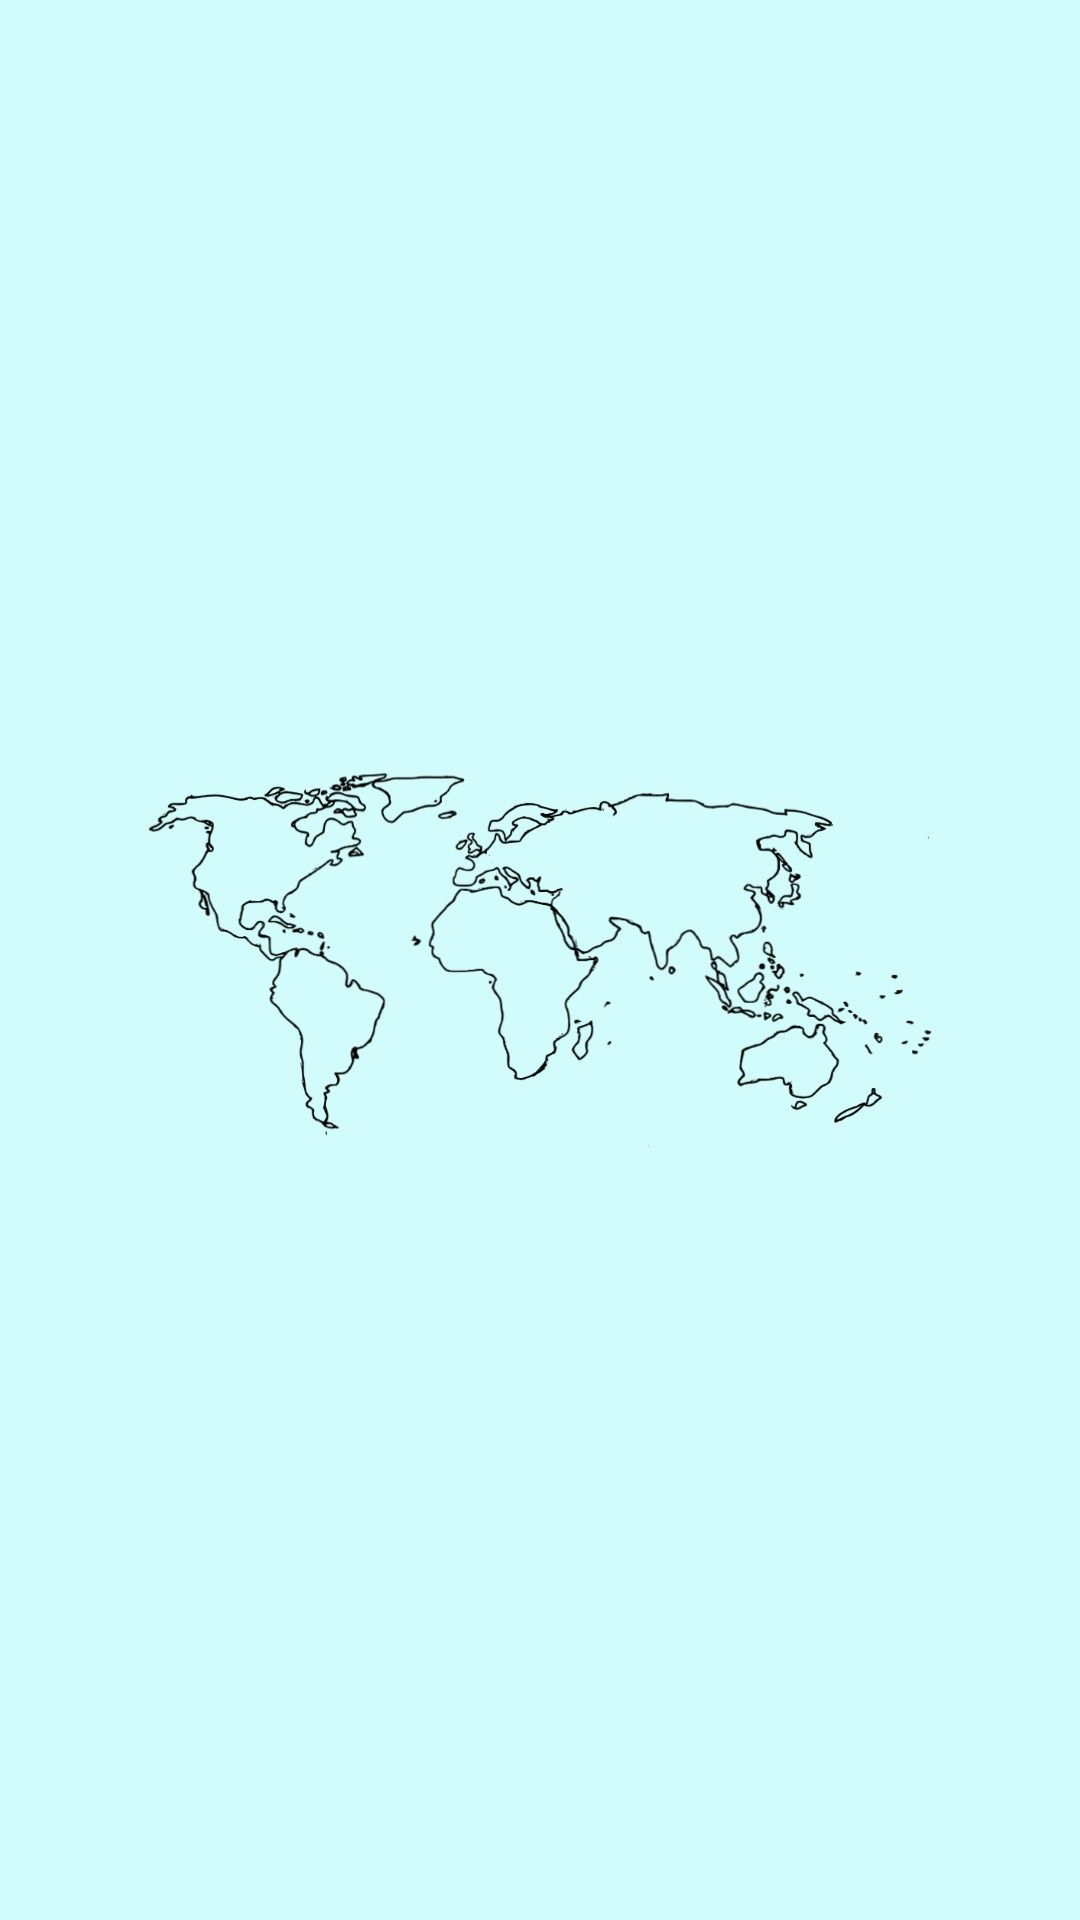 World Map Wallpaper In Mint Green Color Mint Green Wallpaper Iphone World Map Wallpaper Mint Wallpaper